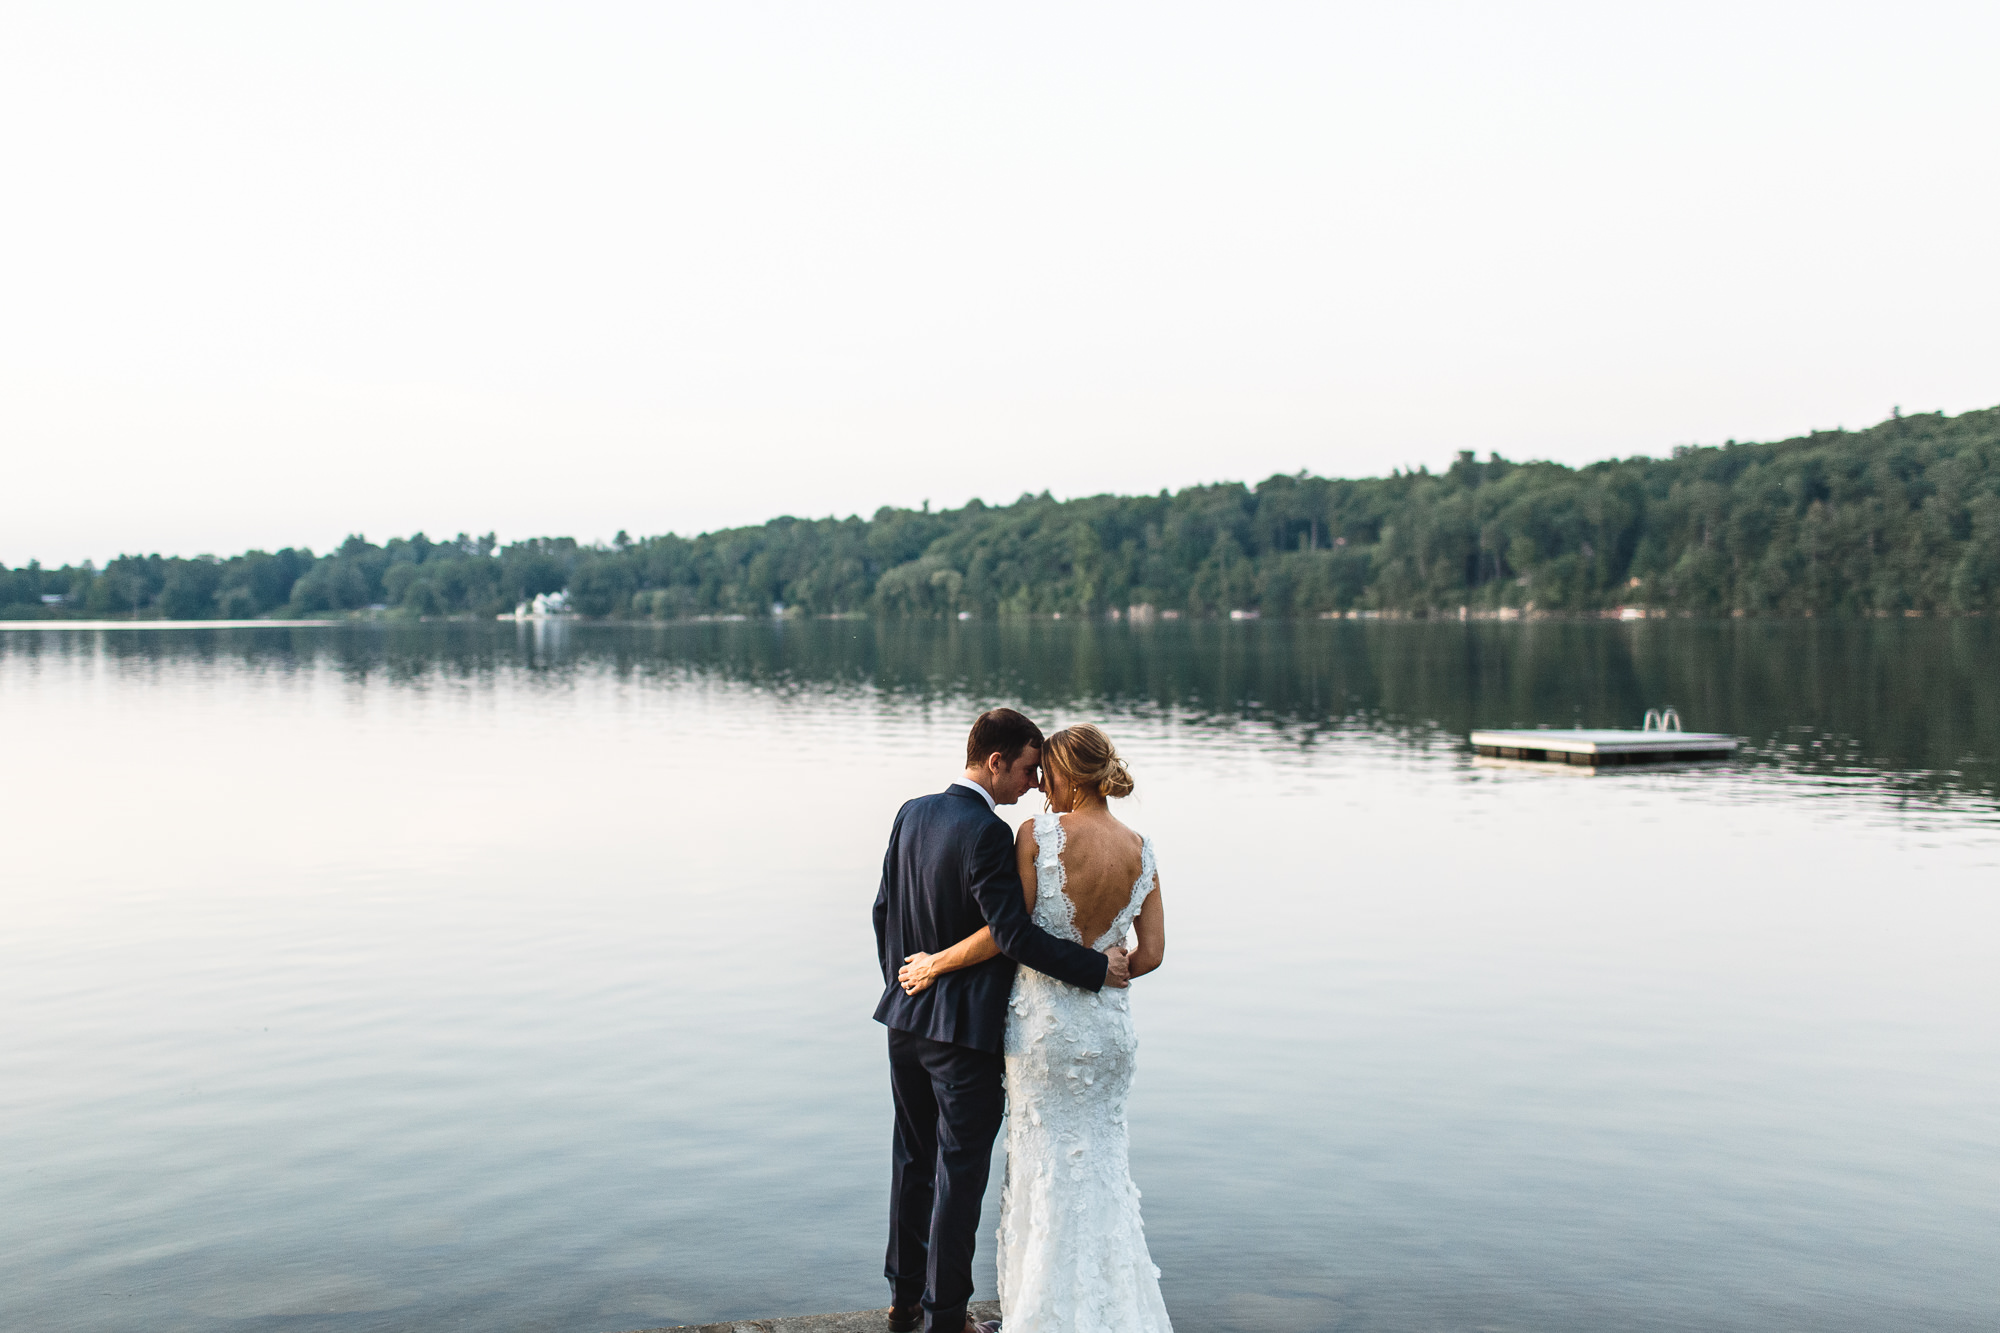 connecticut-summer-lake-wedding-emily-kirke-photography-upstyle (162 of 181).jpg